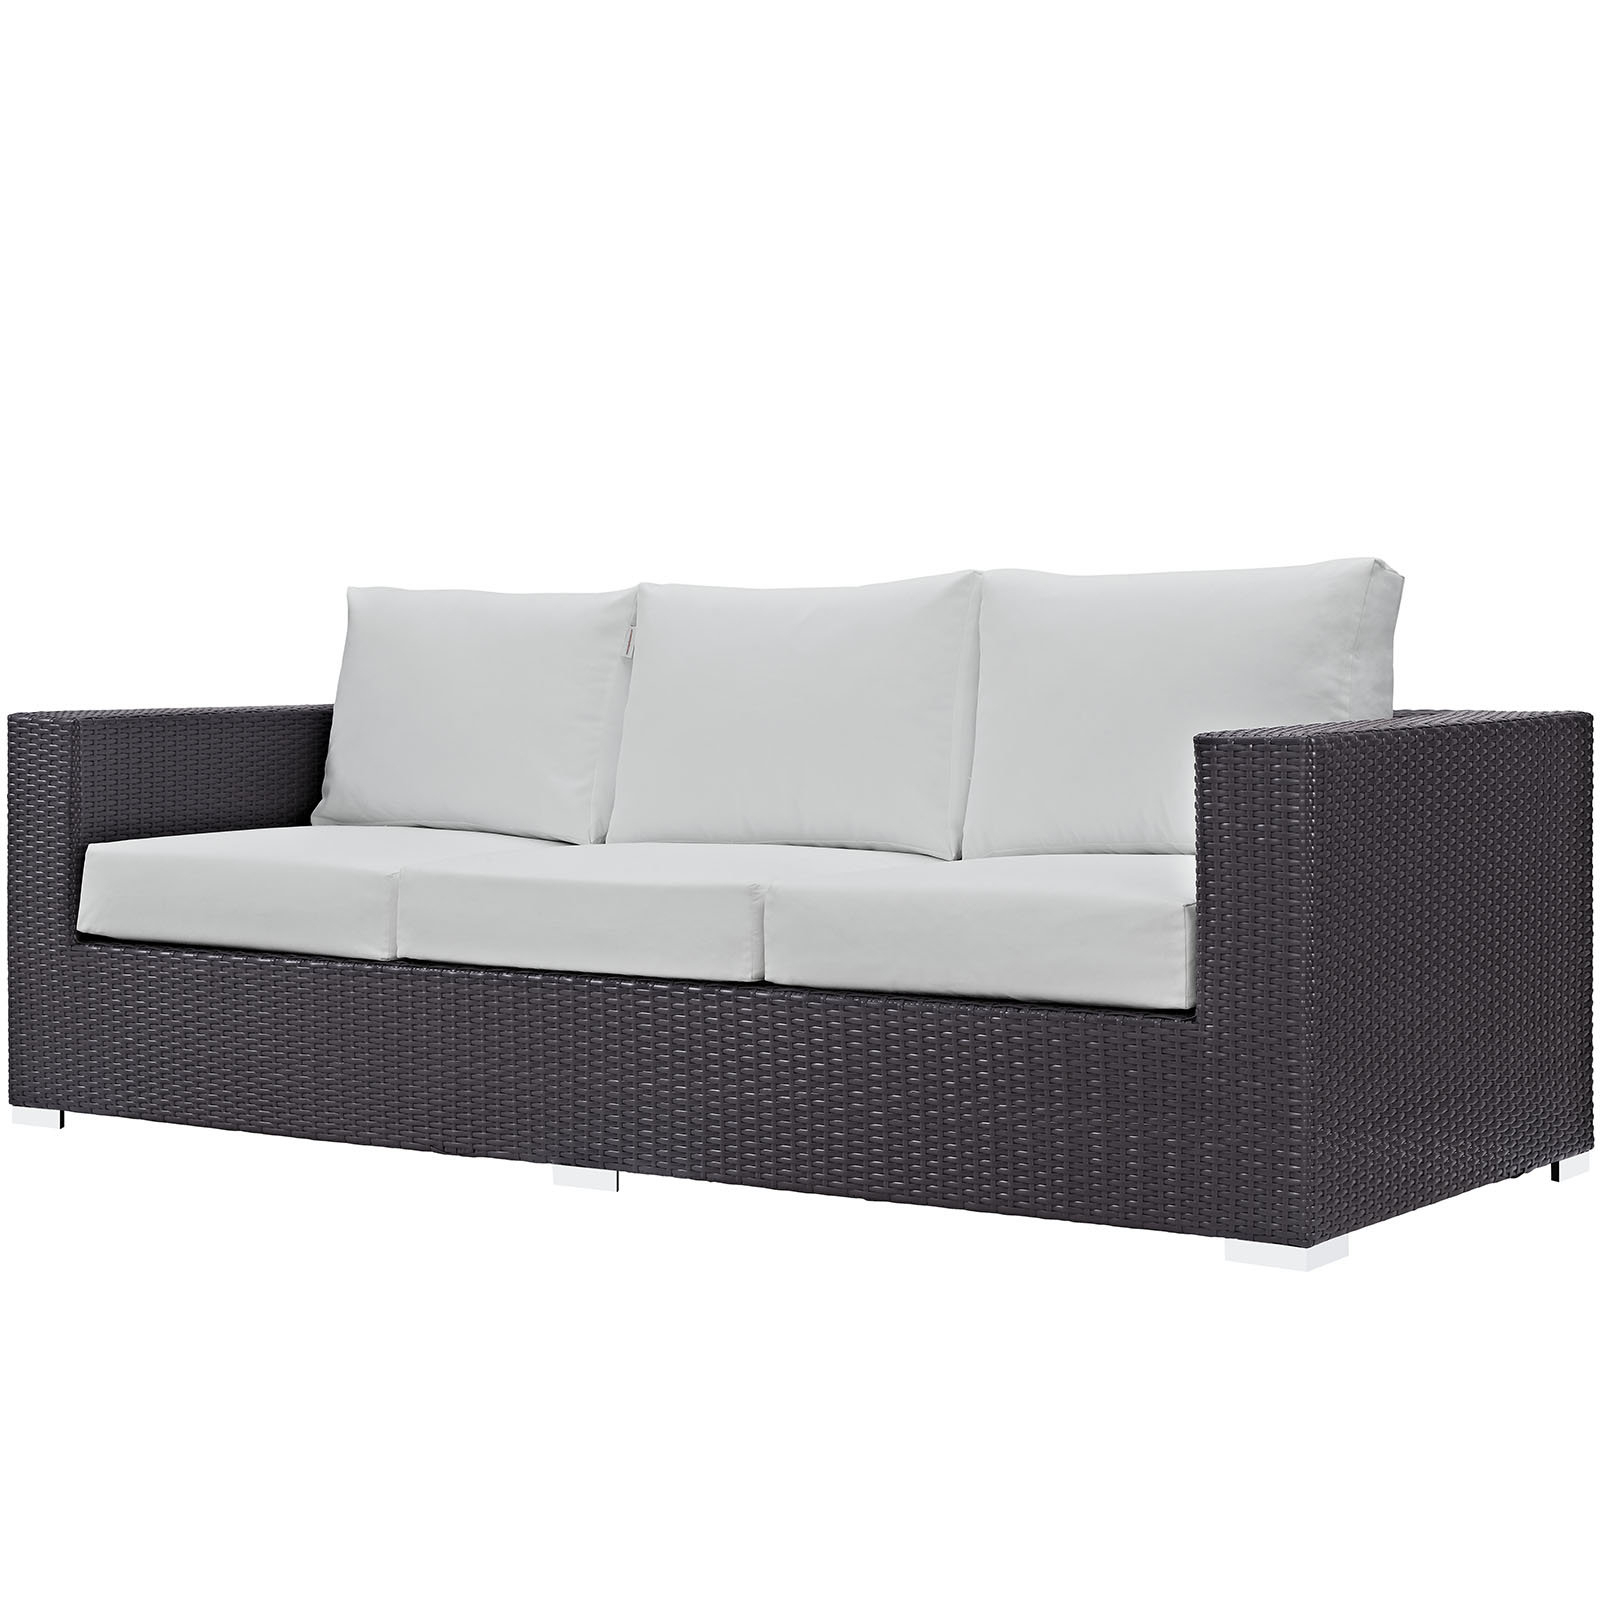 Most Recently Released Brentwood Patio Sofas With Cushions With Brentwood Patio Sofa With Cushions & Reviews (View 14 of 18)